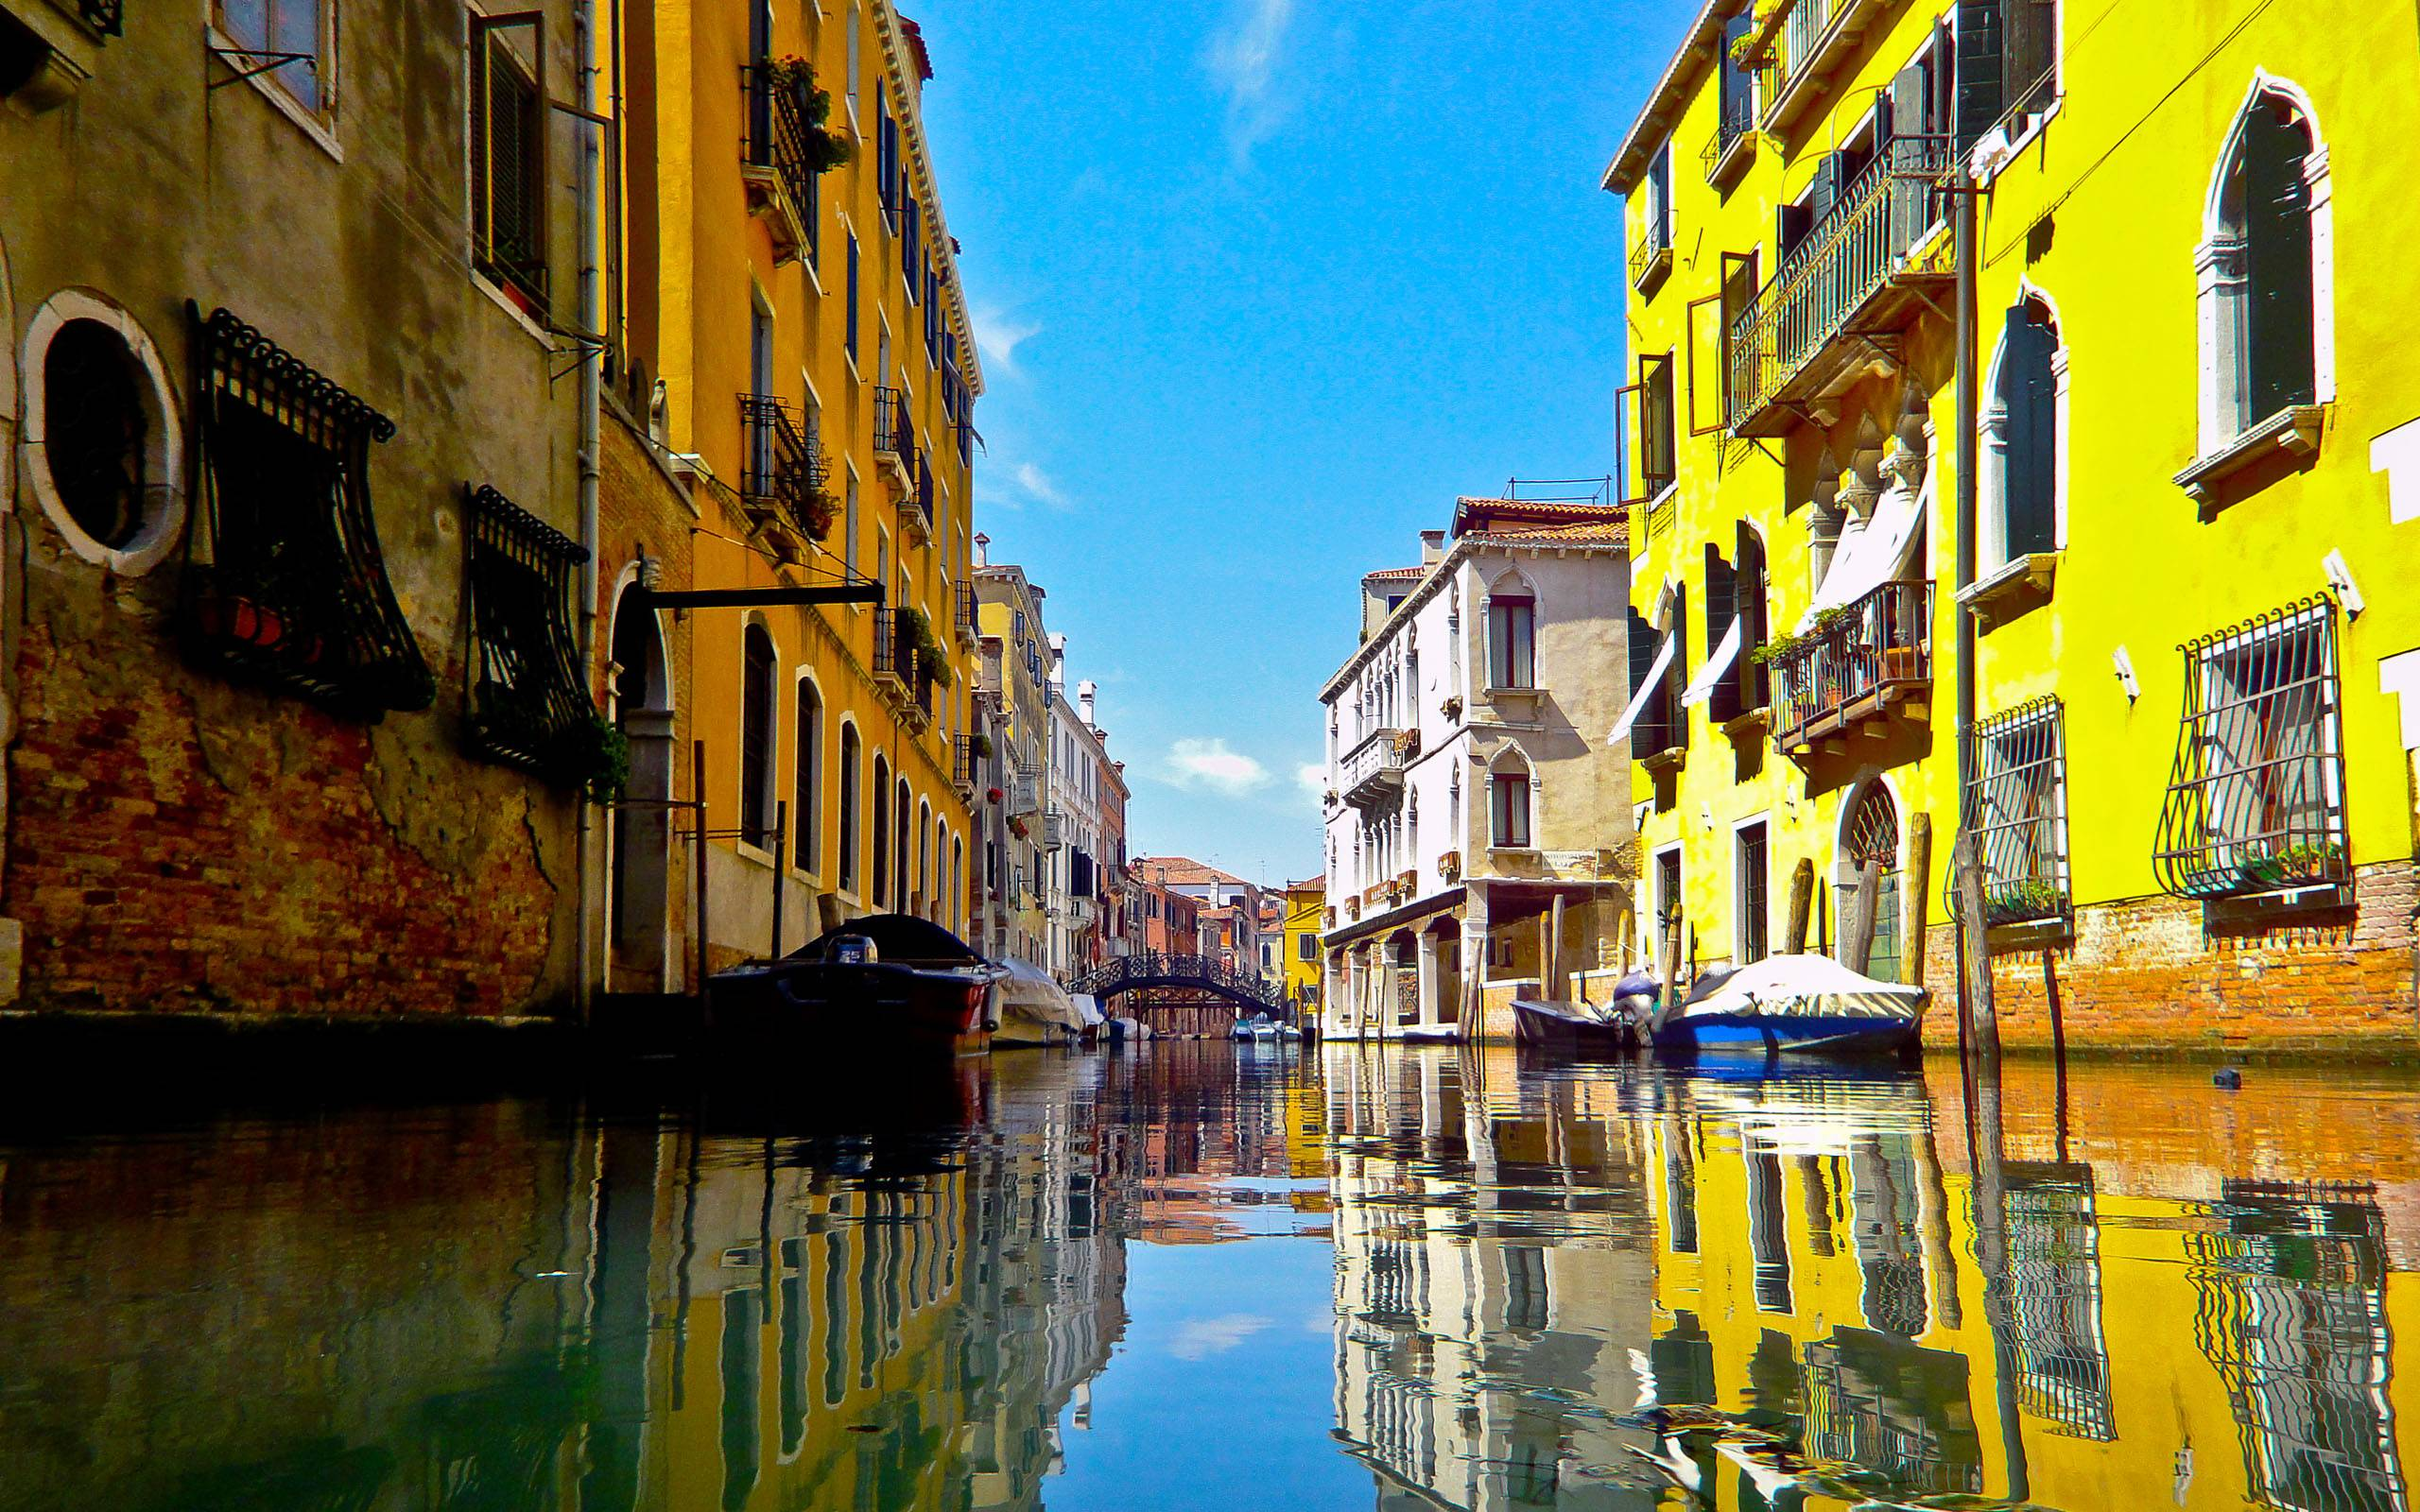 Venice Italy Wallpapers 2560x1600